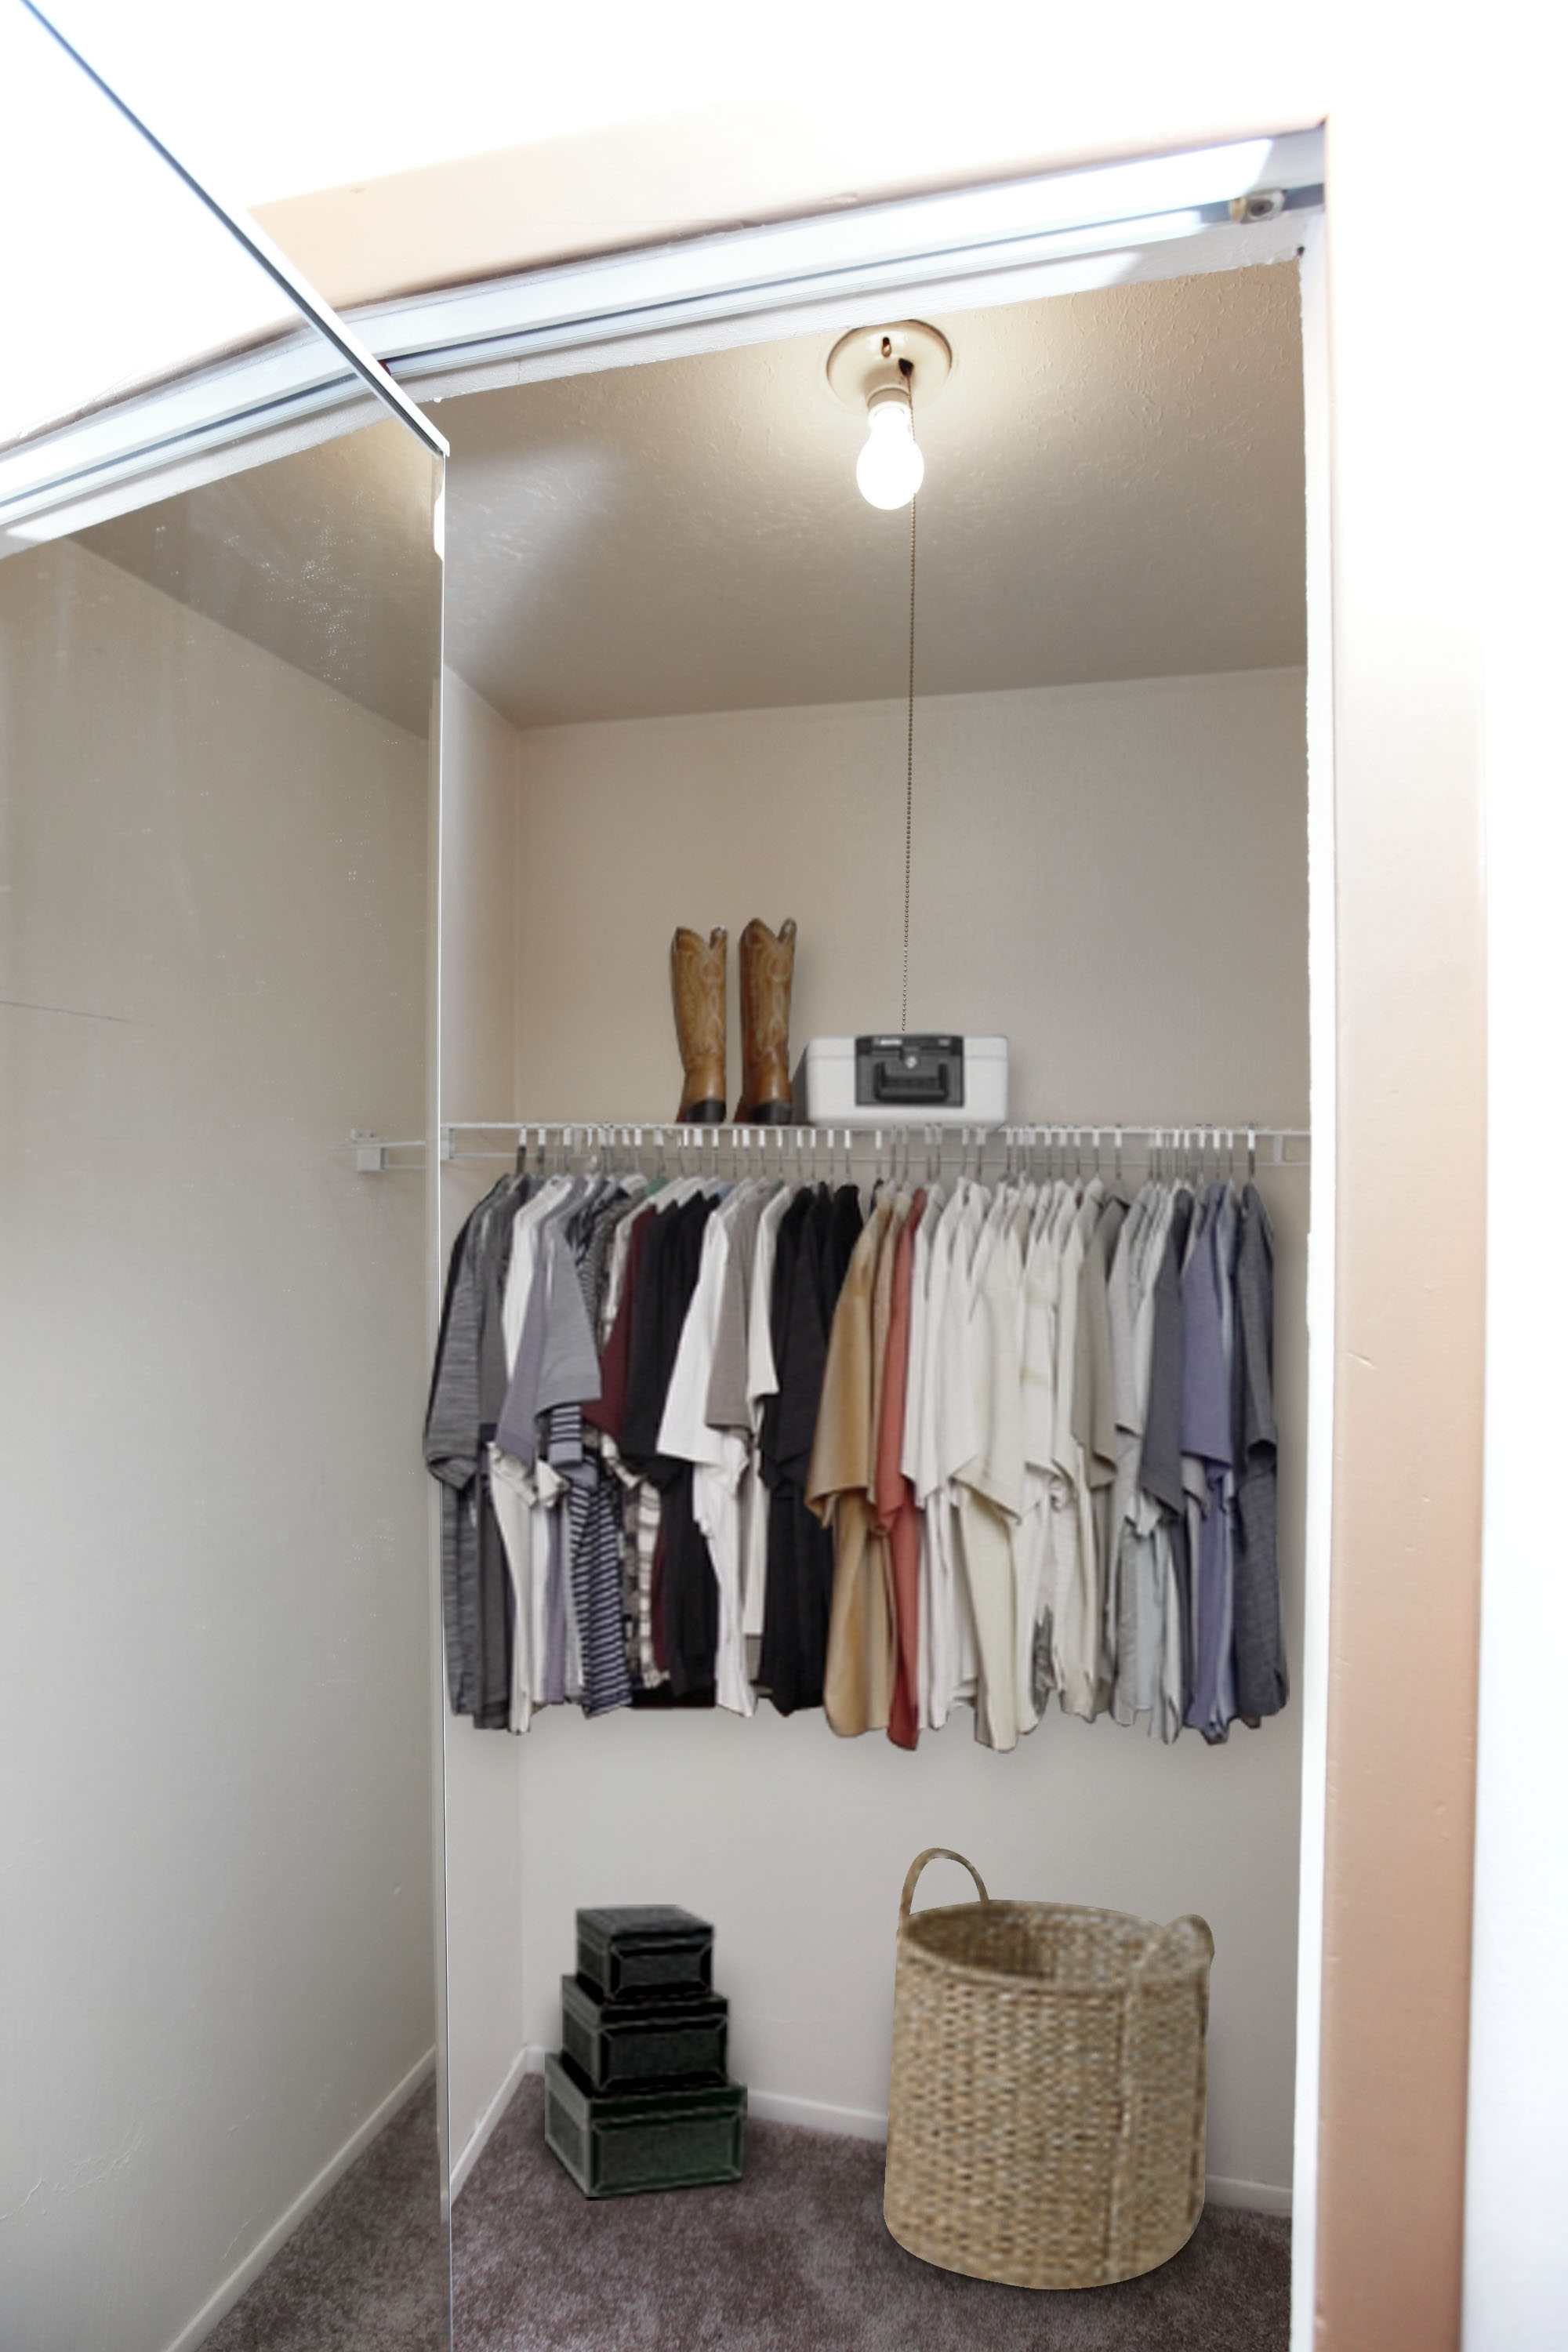 2C Walk-in Closet at the Greenridge on Euclid Apartments in Euclid, OH